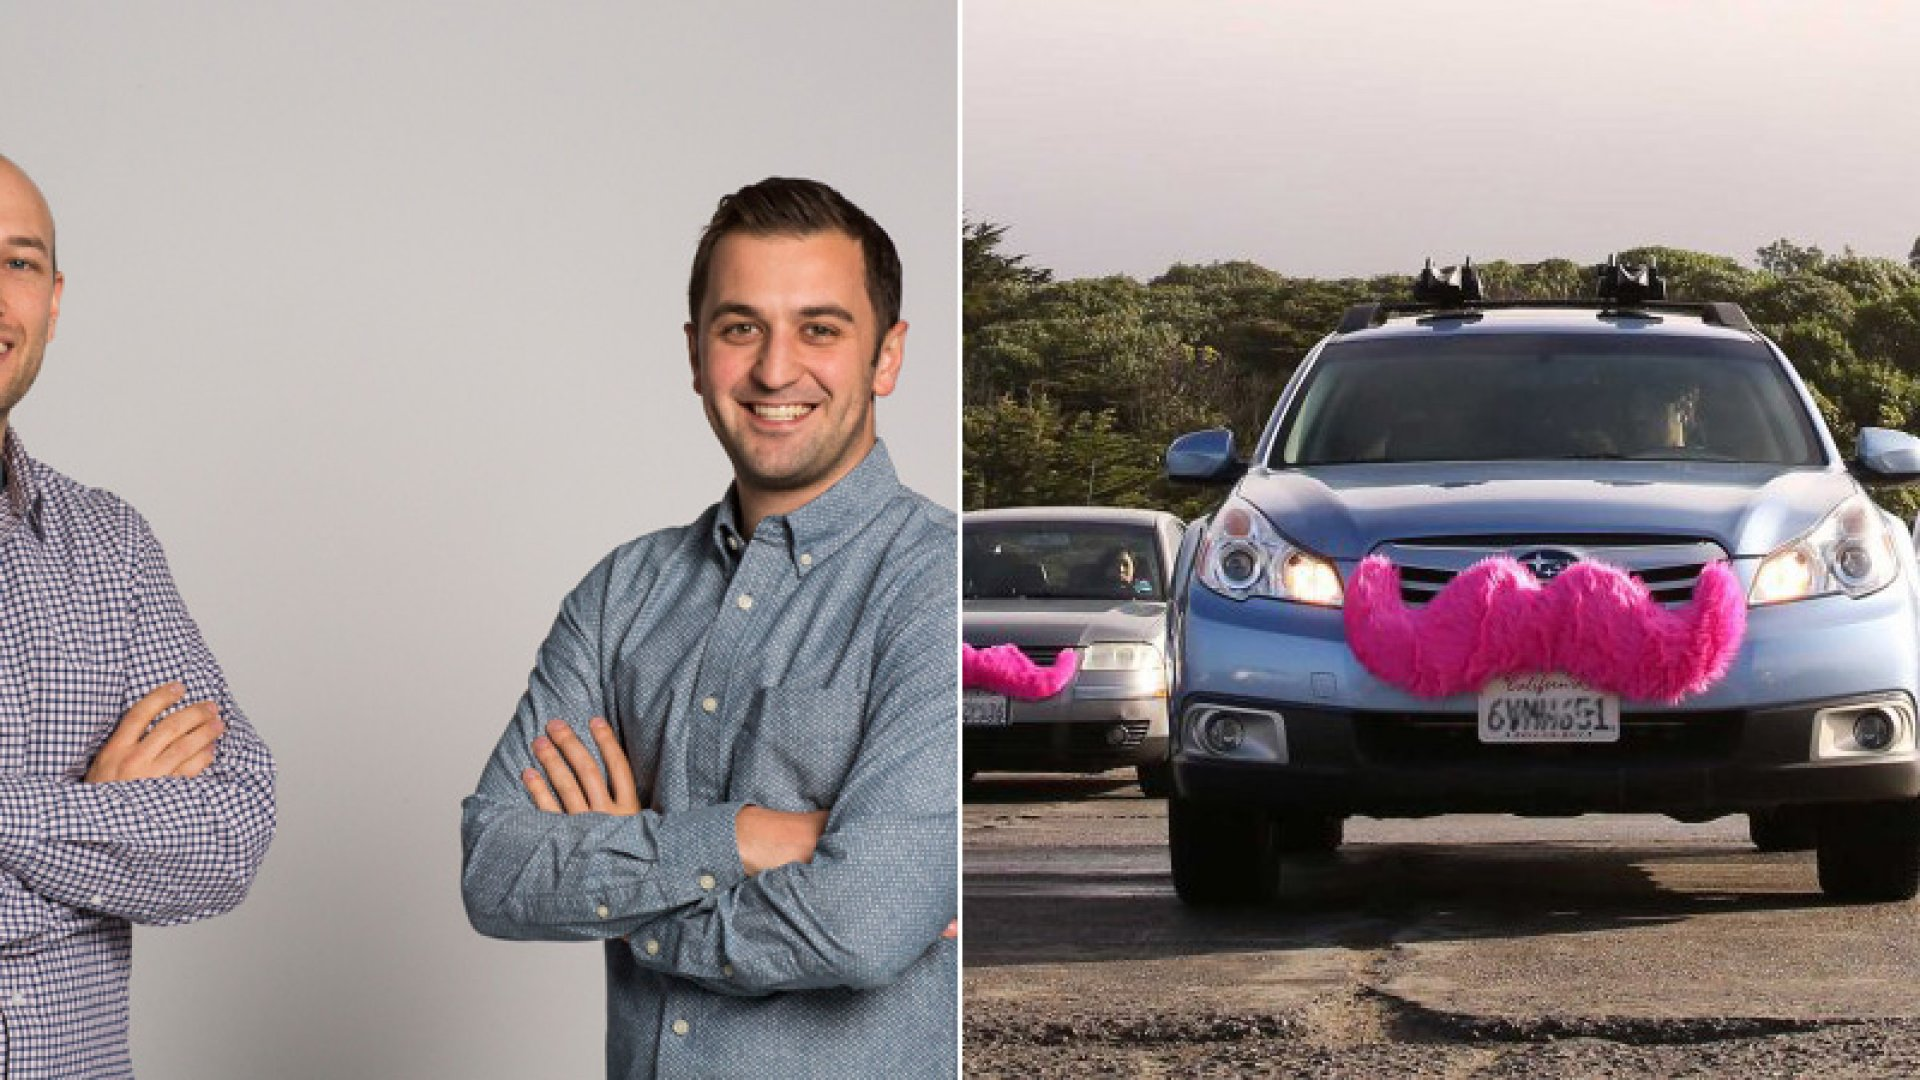 Logan Green, left, teamed up with John Zimmer in 2007 to found a ride-sharing service. In 2012, they pivoted their idea to create the fast-growing car-hailing company Lyft. <br> <br>